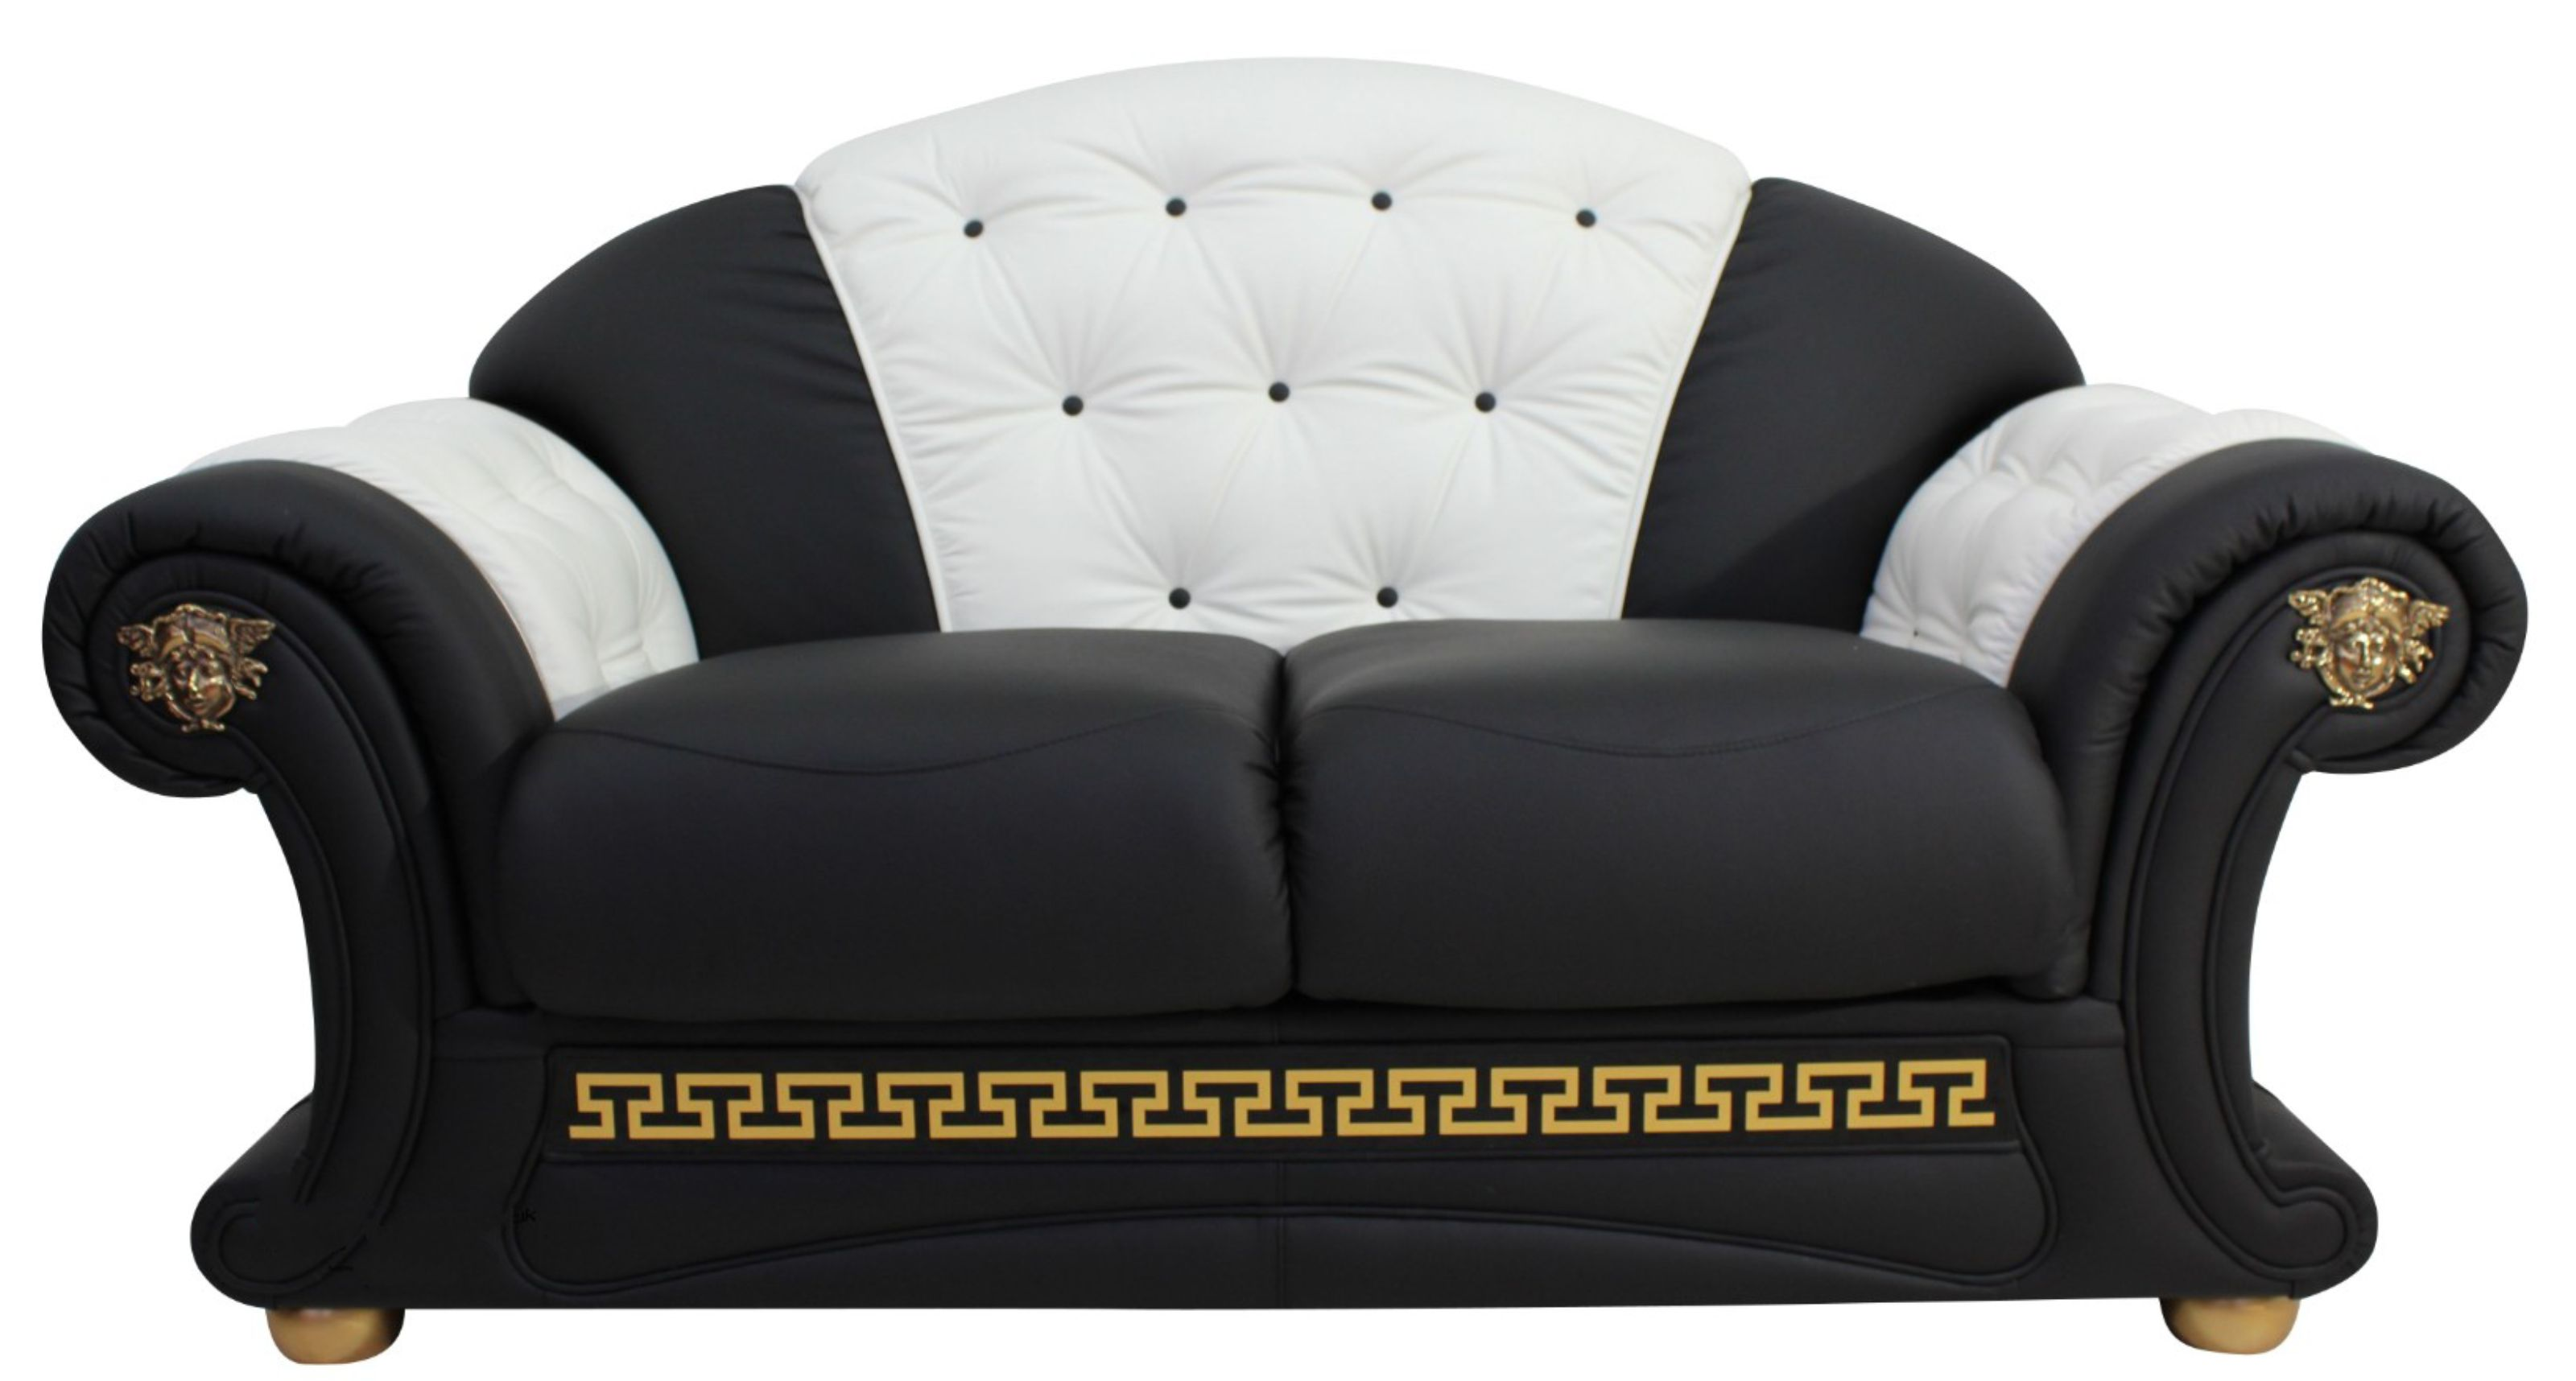 Super North Carolina 2 Seater Sofa Settee Genuine Italian Black White Leather Offer Unemploymentrelief Wooden Chair Designs For Living Room Unemploymentrelieforg